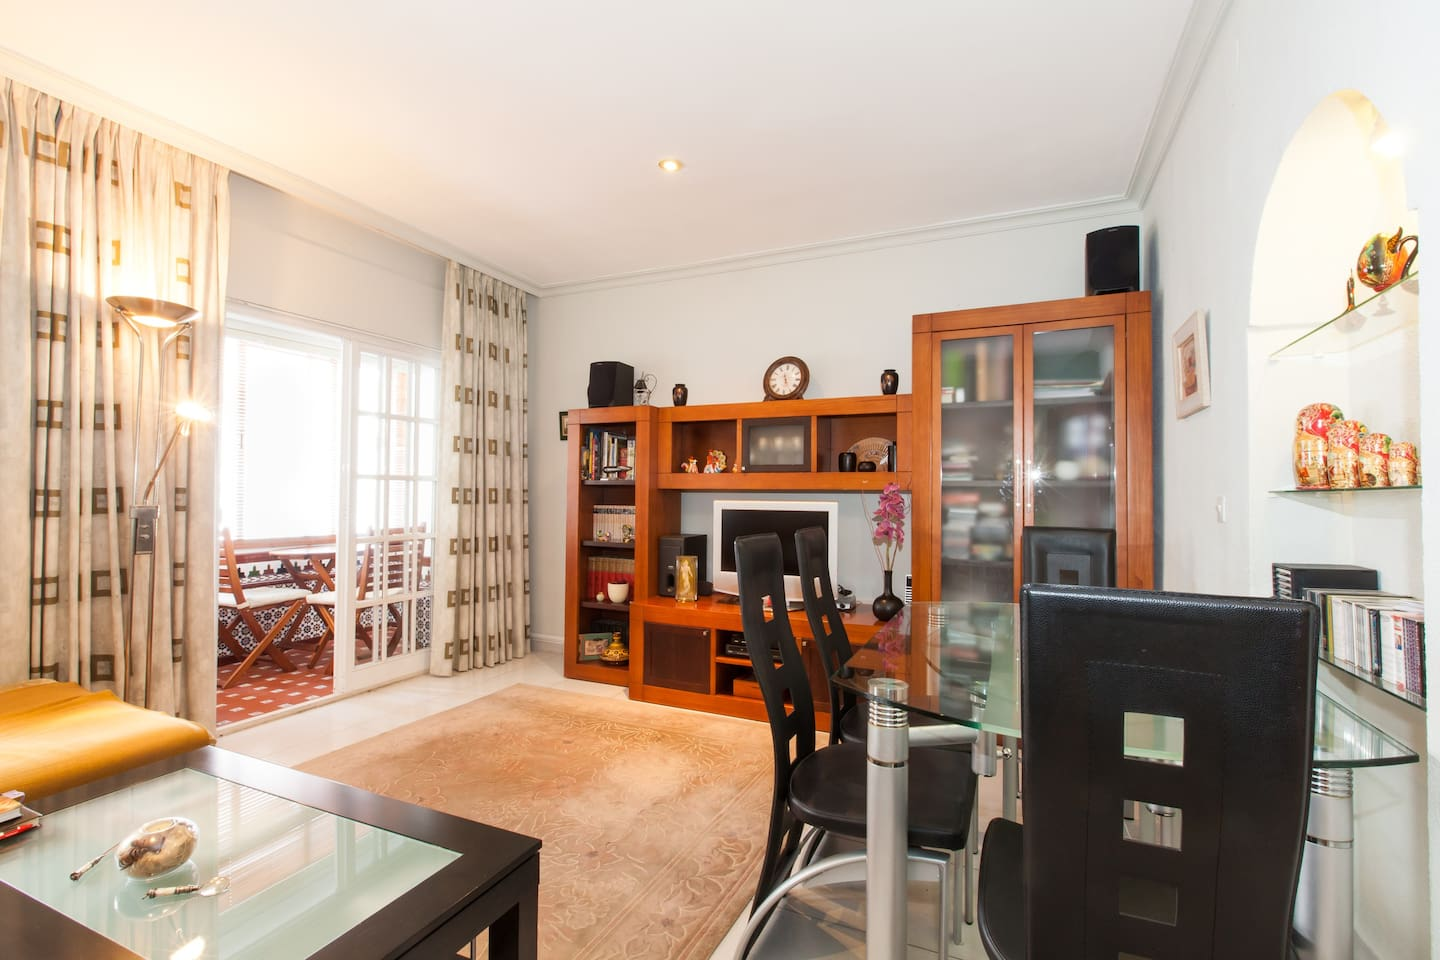 We share this living room and dining area with our guests